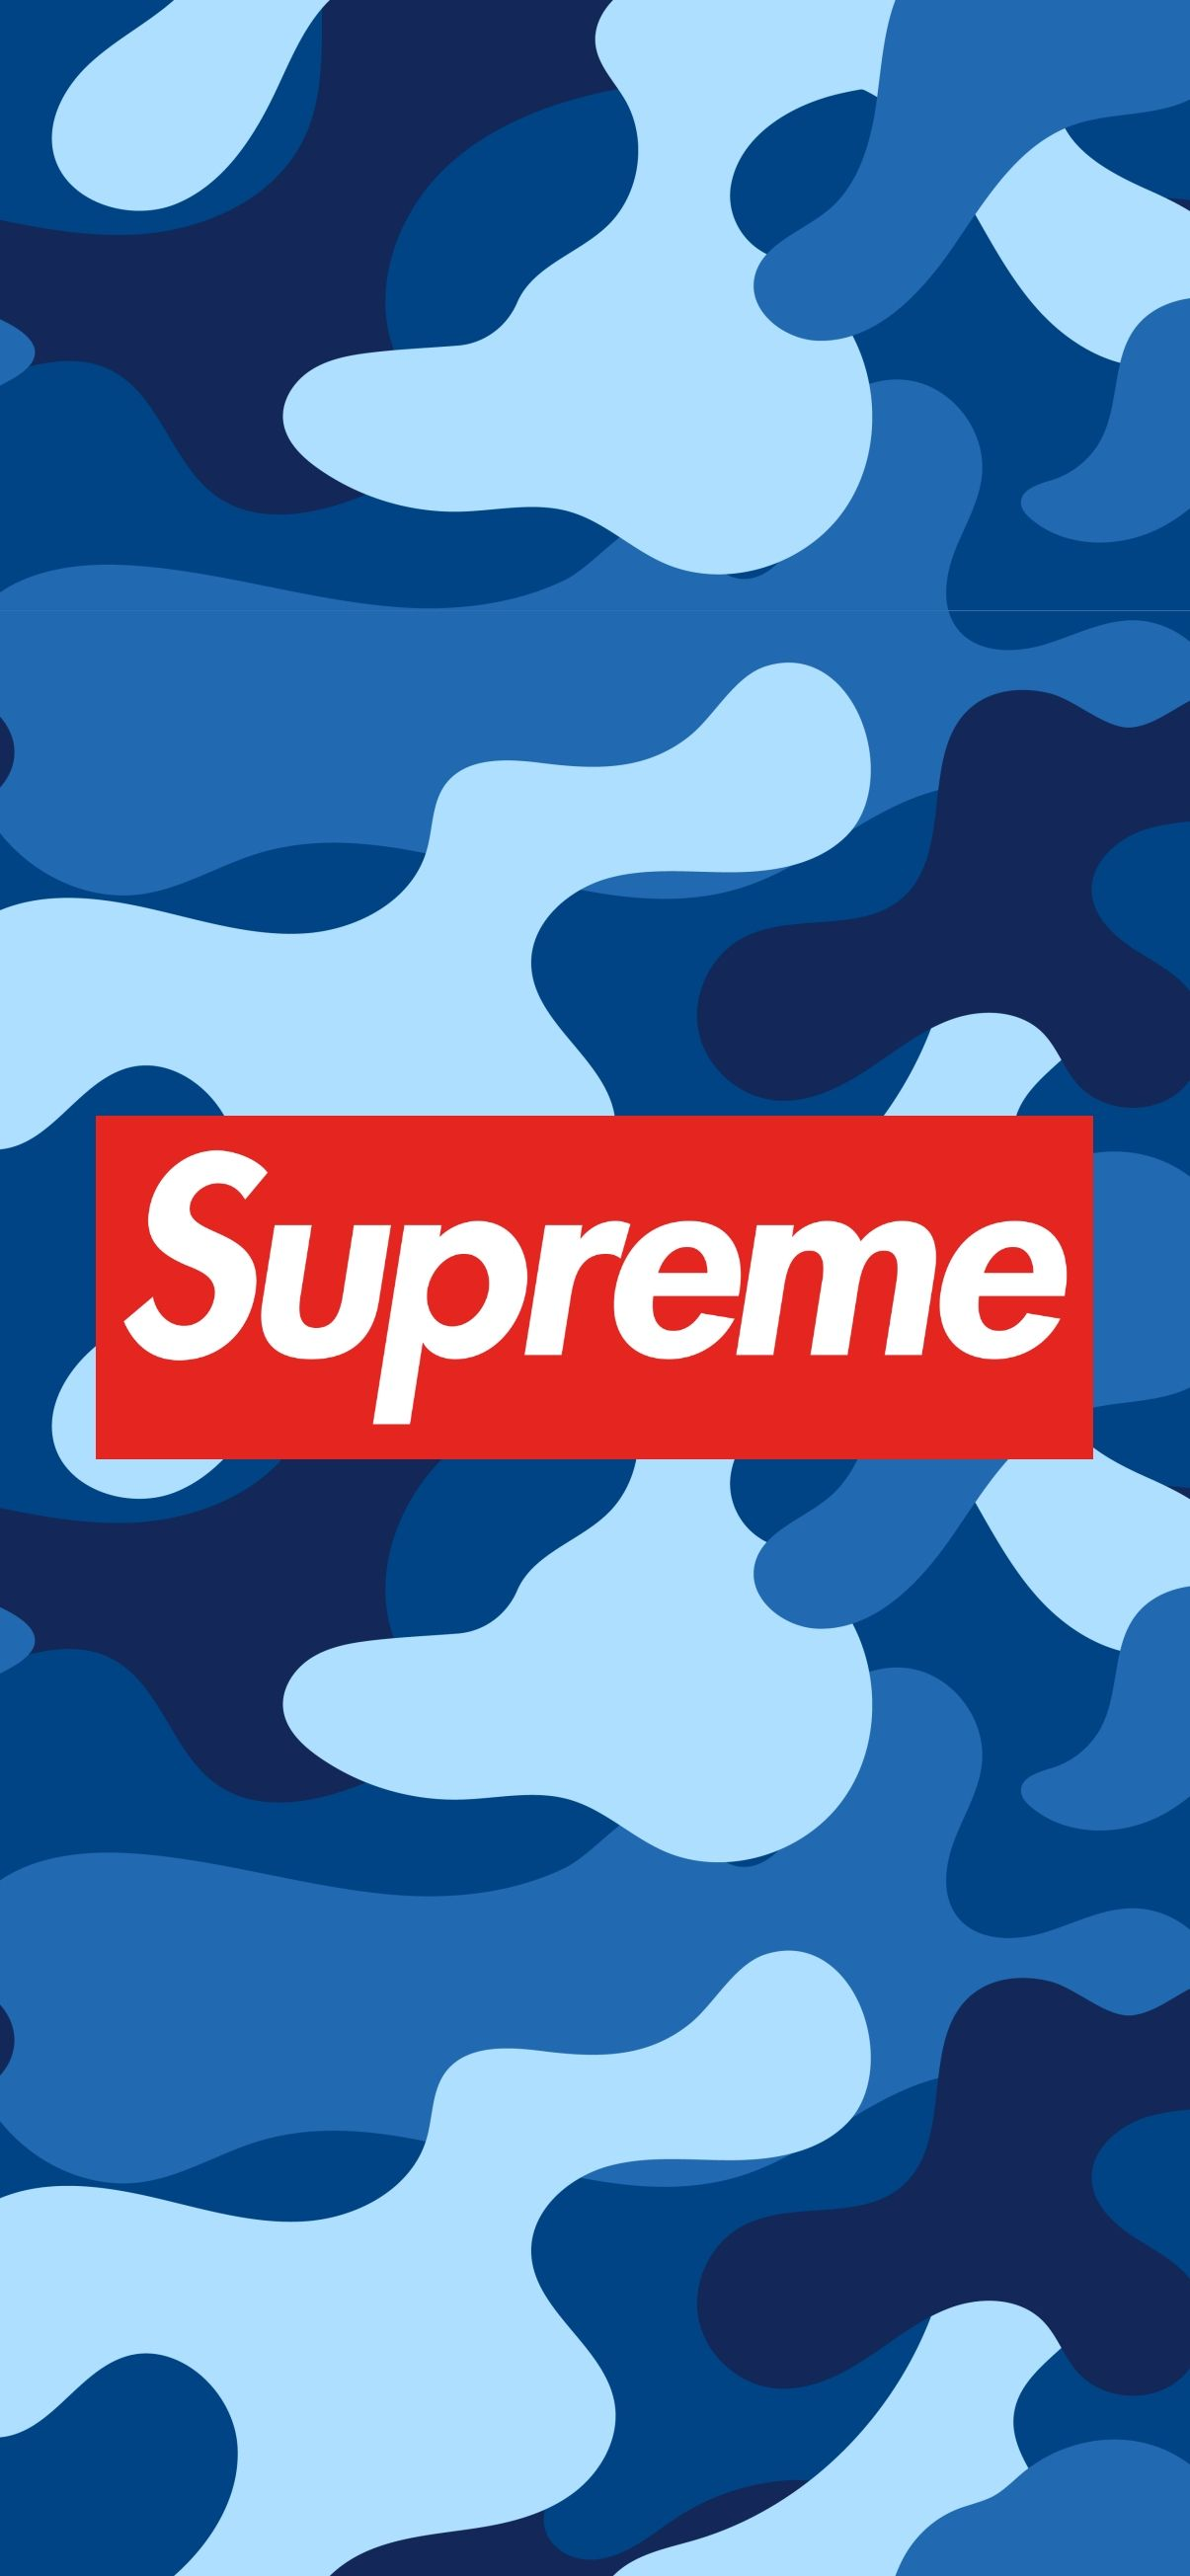 6 Supreme Camouflage Iphone Wallpapers Heroscreen In 2020 Supreme Iphone Wallpaper Hypebeast Iphone Wallpaper Supreme Wallpaper